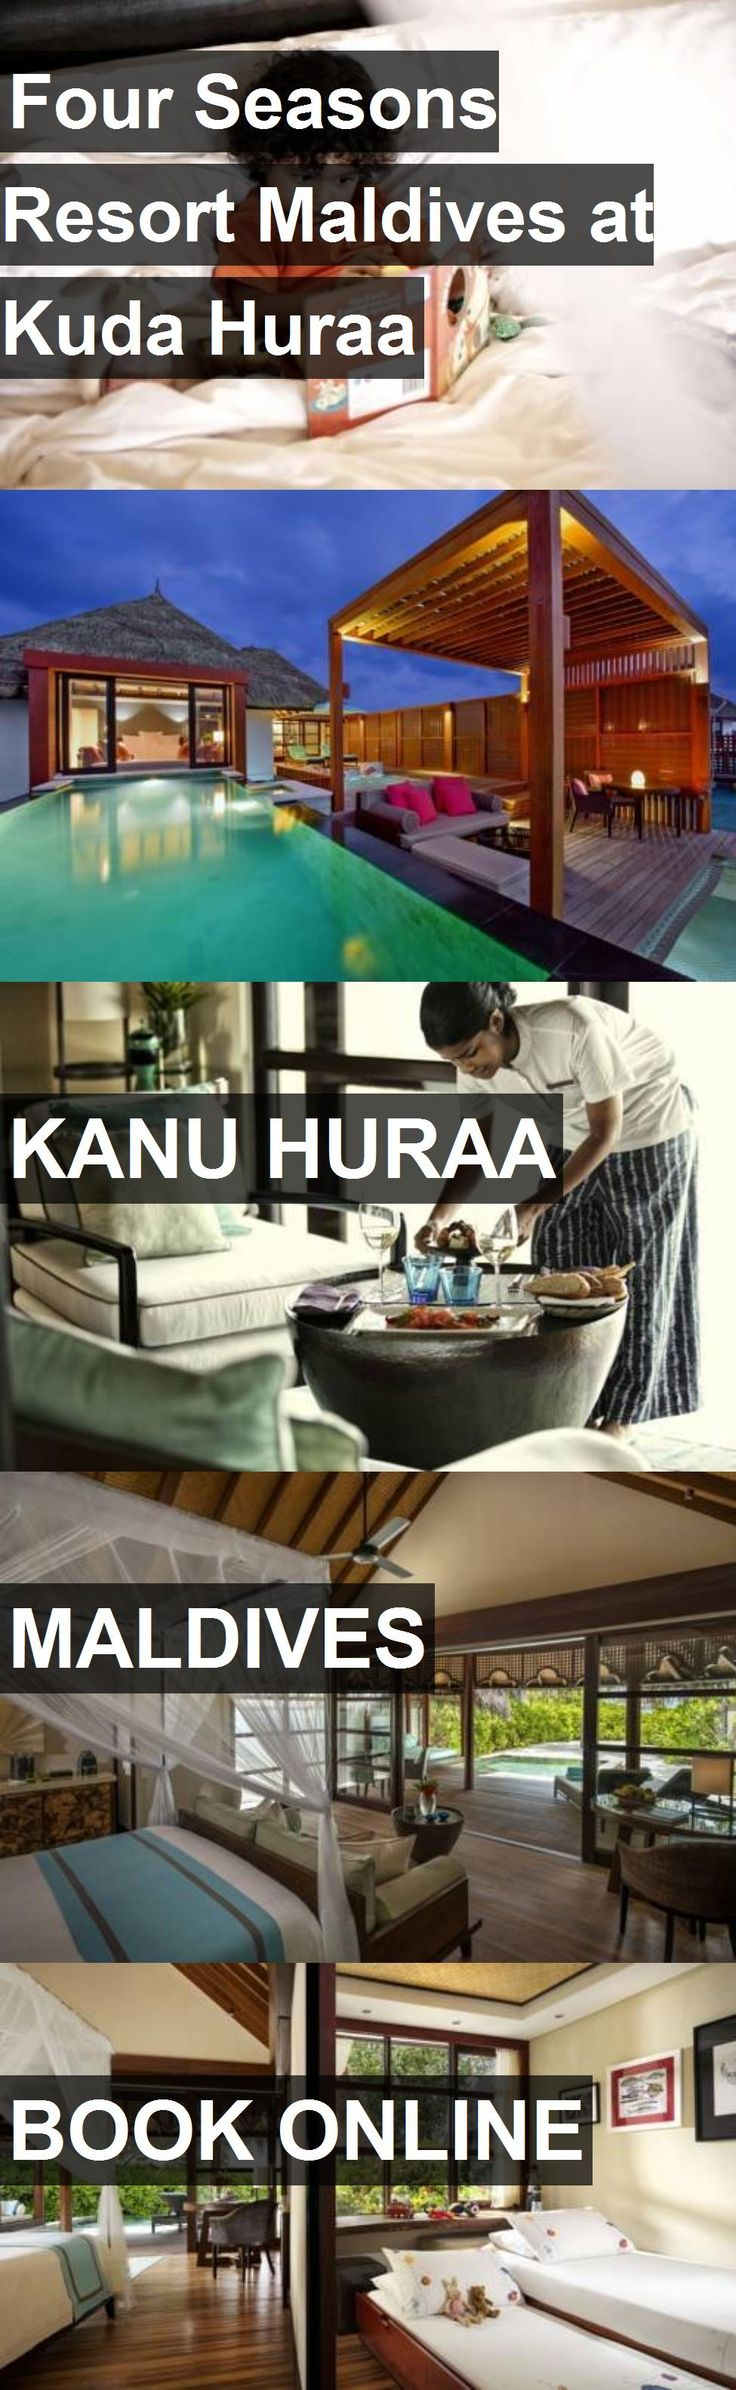 Hotel Four Seasons Resort Maldives at Kuda Huraa in Kanu Huraa, Maldives. For more information, photos, reviews and best prices please follow the link. #Maldives #KanuHuraa #travel #vacation #hotel